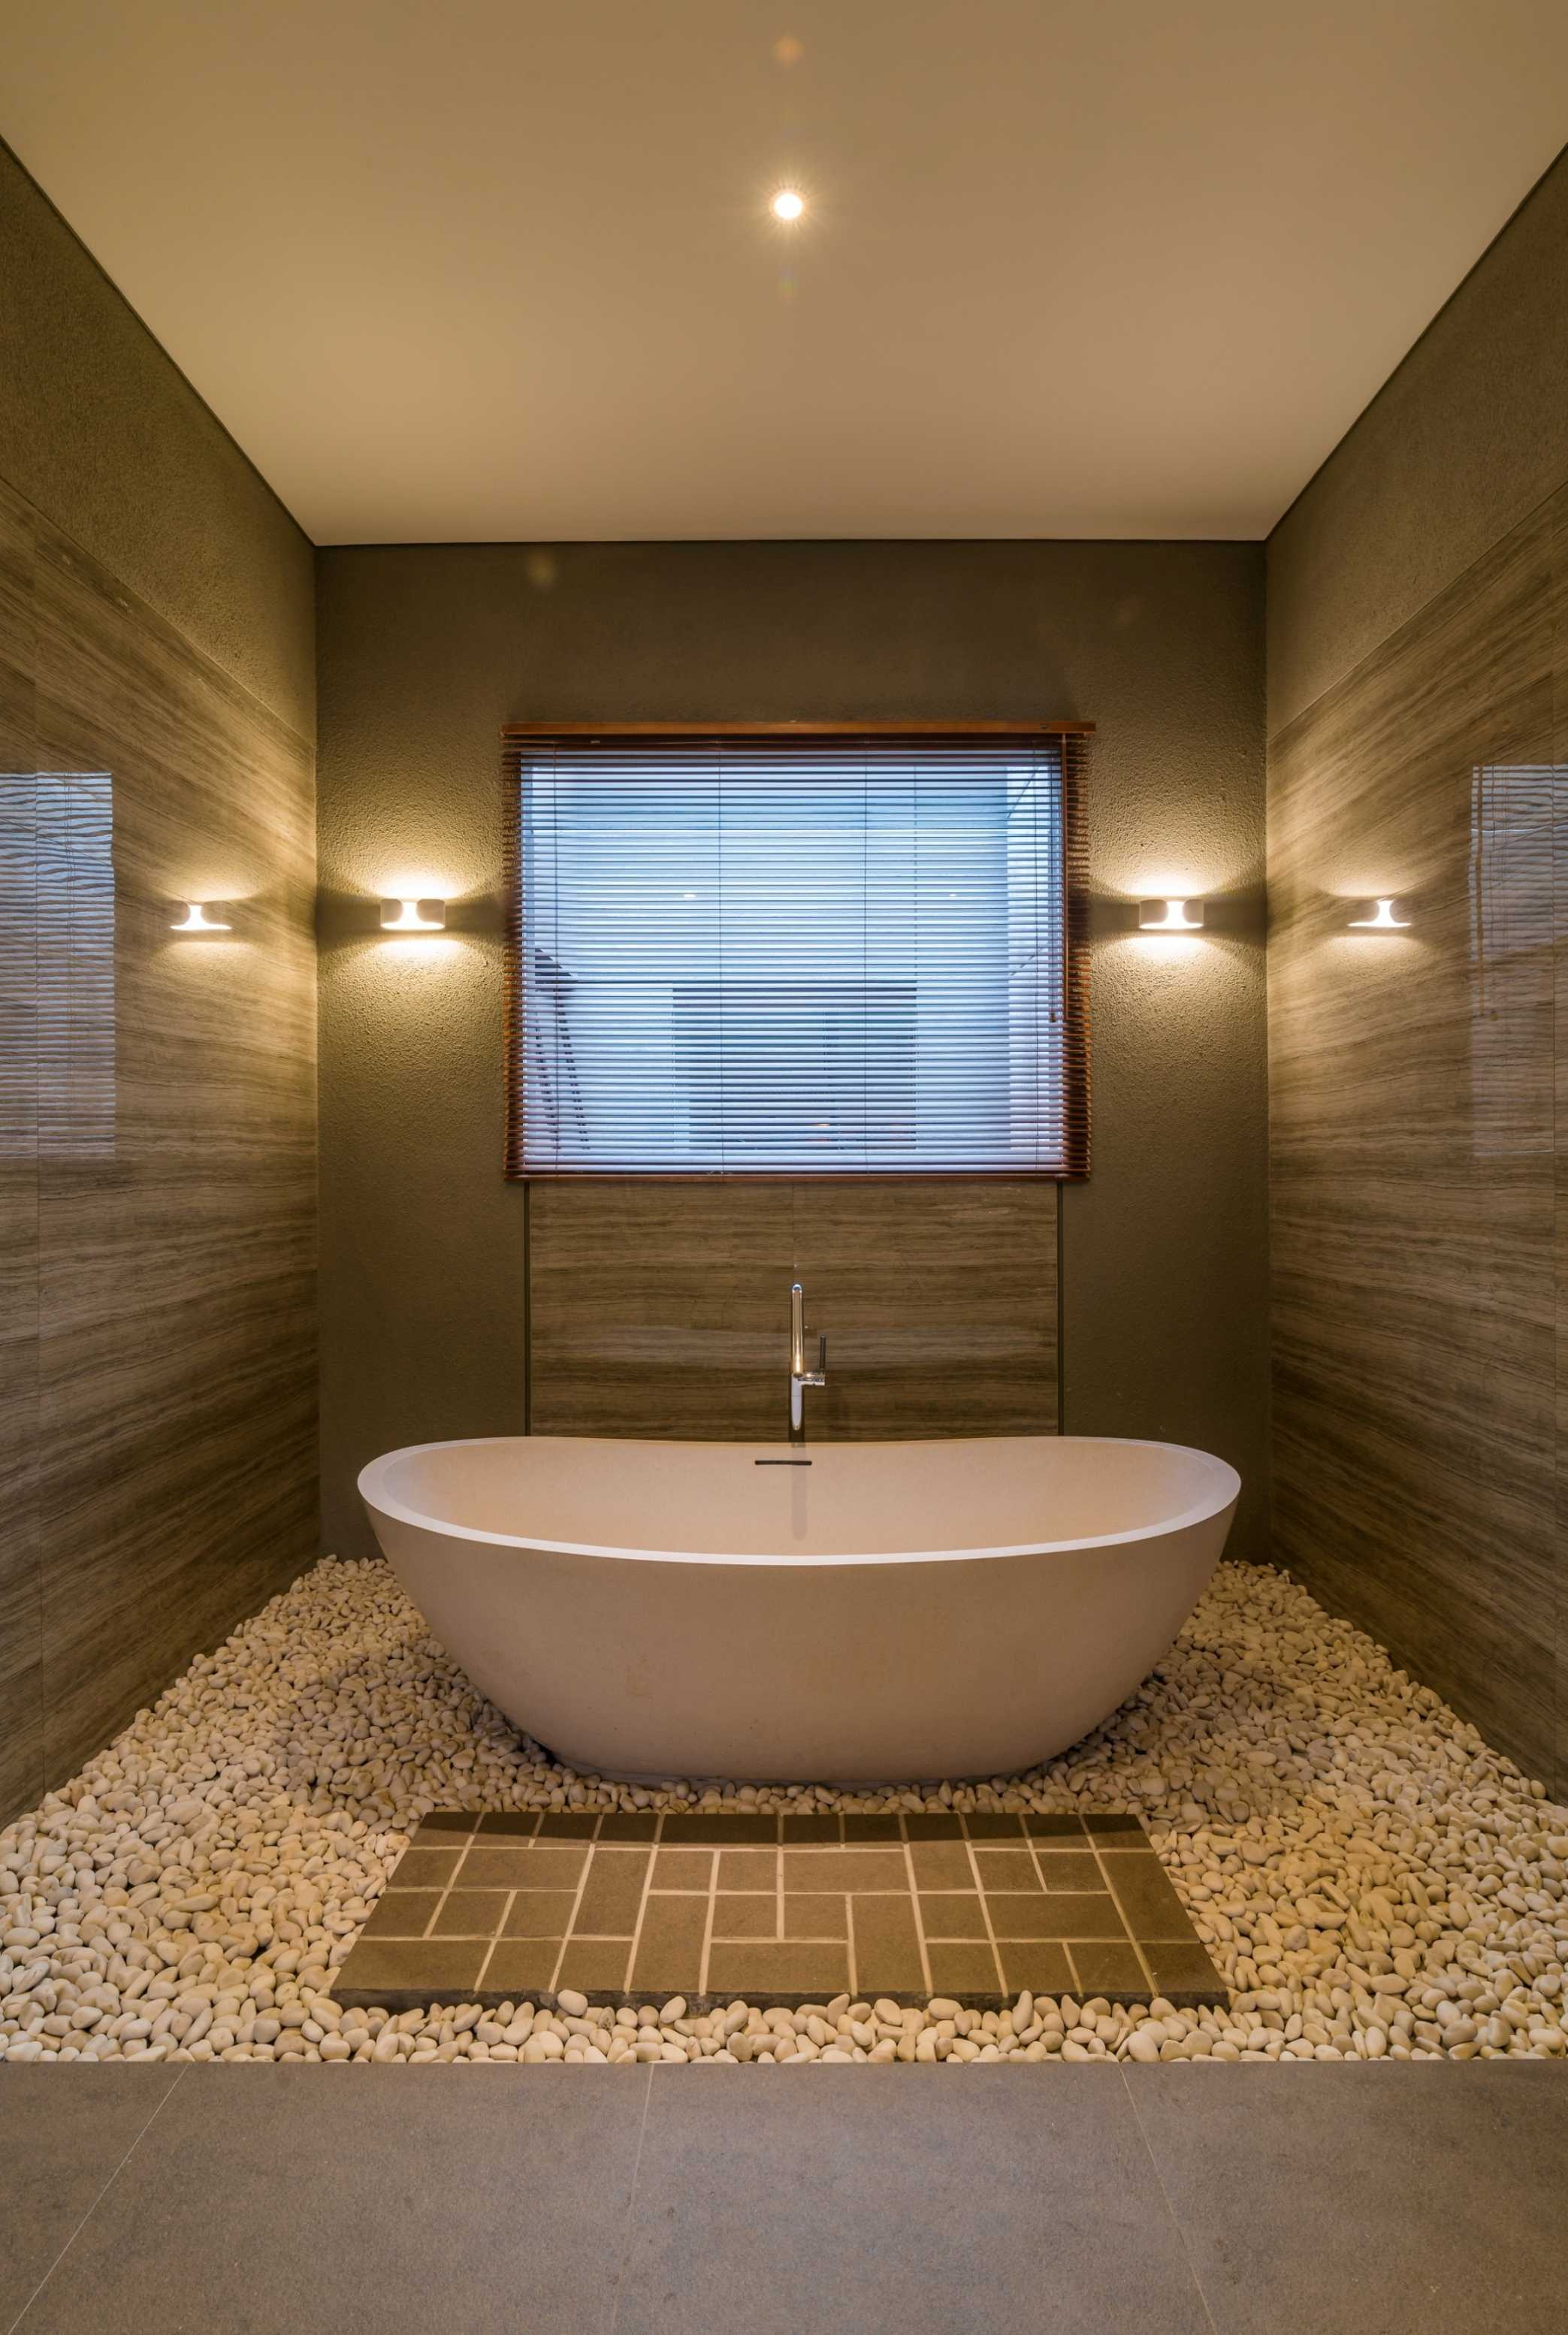 Archid Design&build Dast Residence Bandung, Kota Bandung, Jawa Barat, Indonesia Bandung, Kota Bandung, Jawa Barat, Indonesia Bathup Area   49046